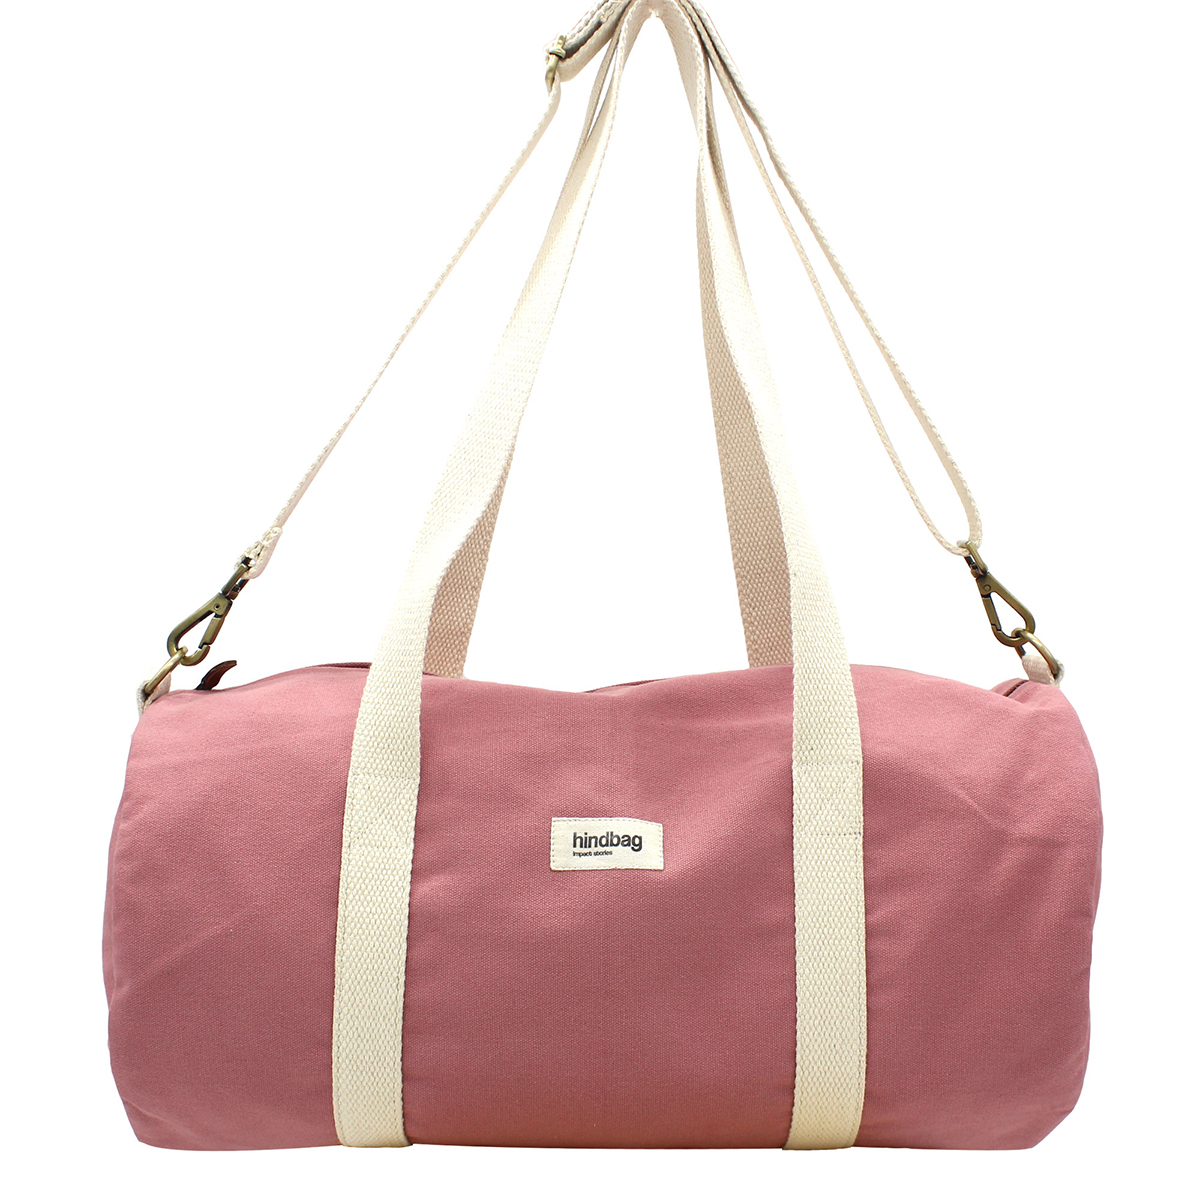 Sac à langer Sac Weekend Simon - Blush Sac Weekend Simon - Blush